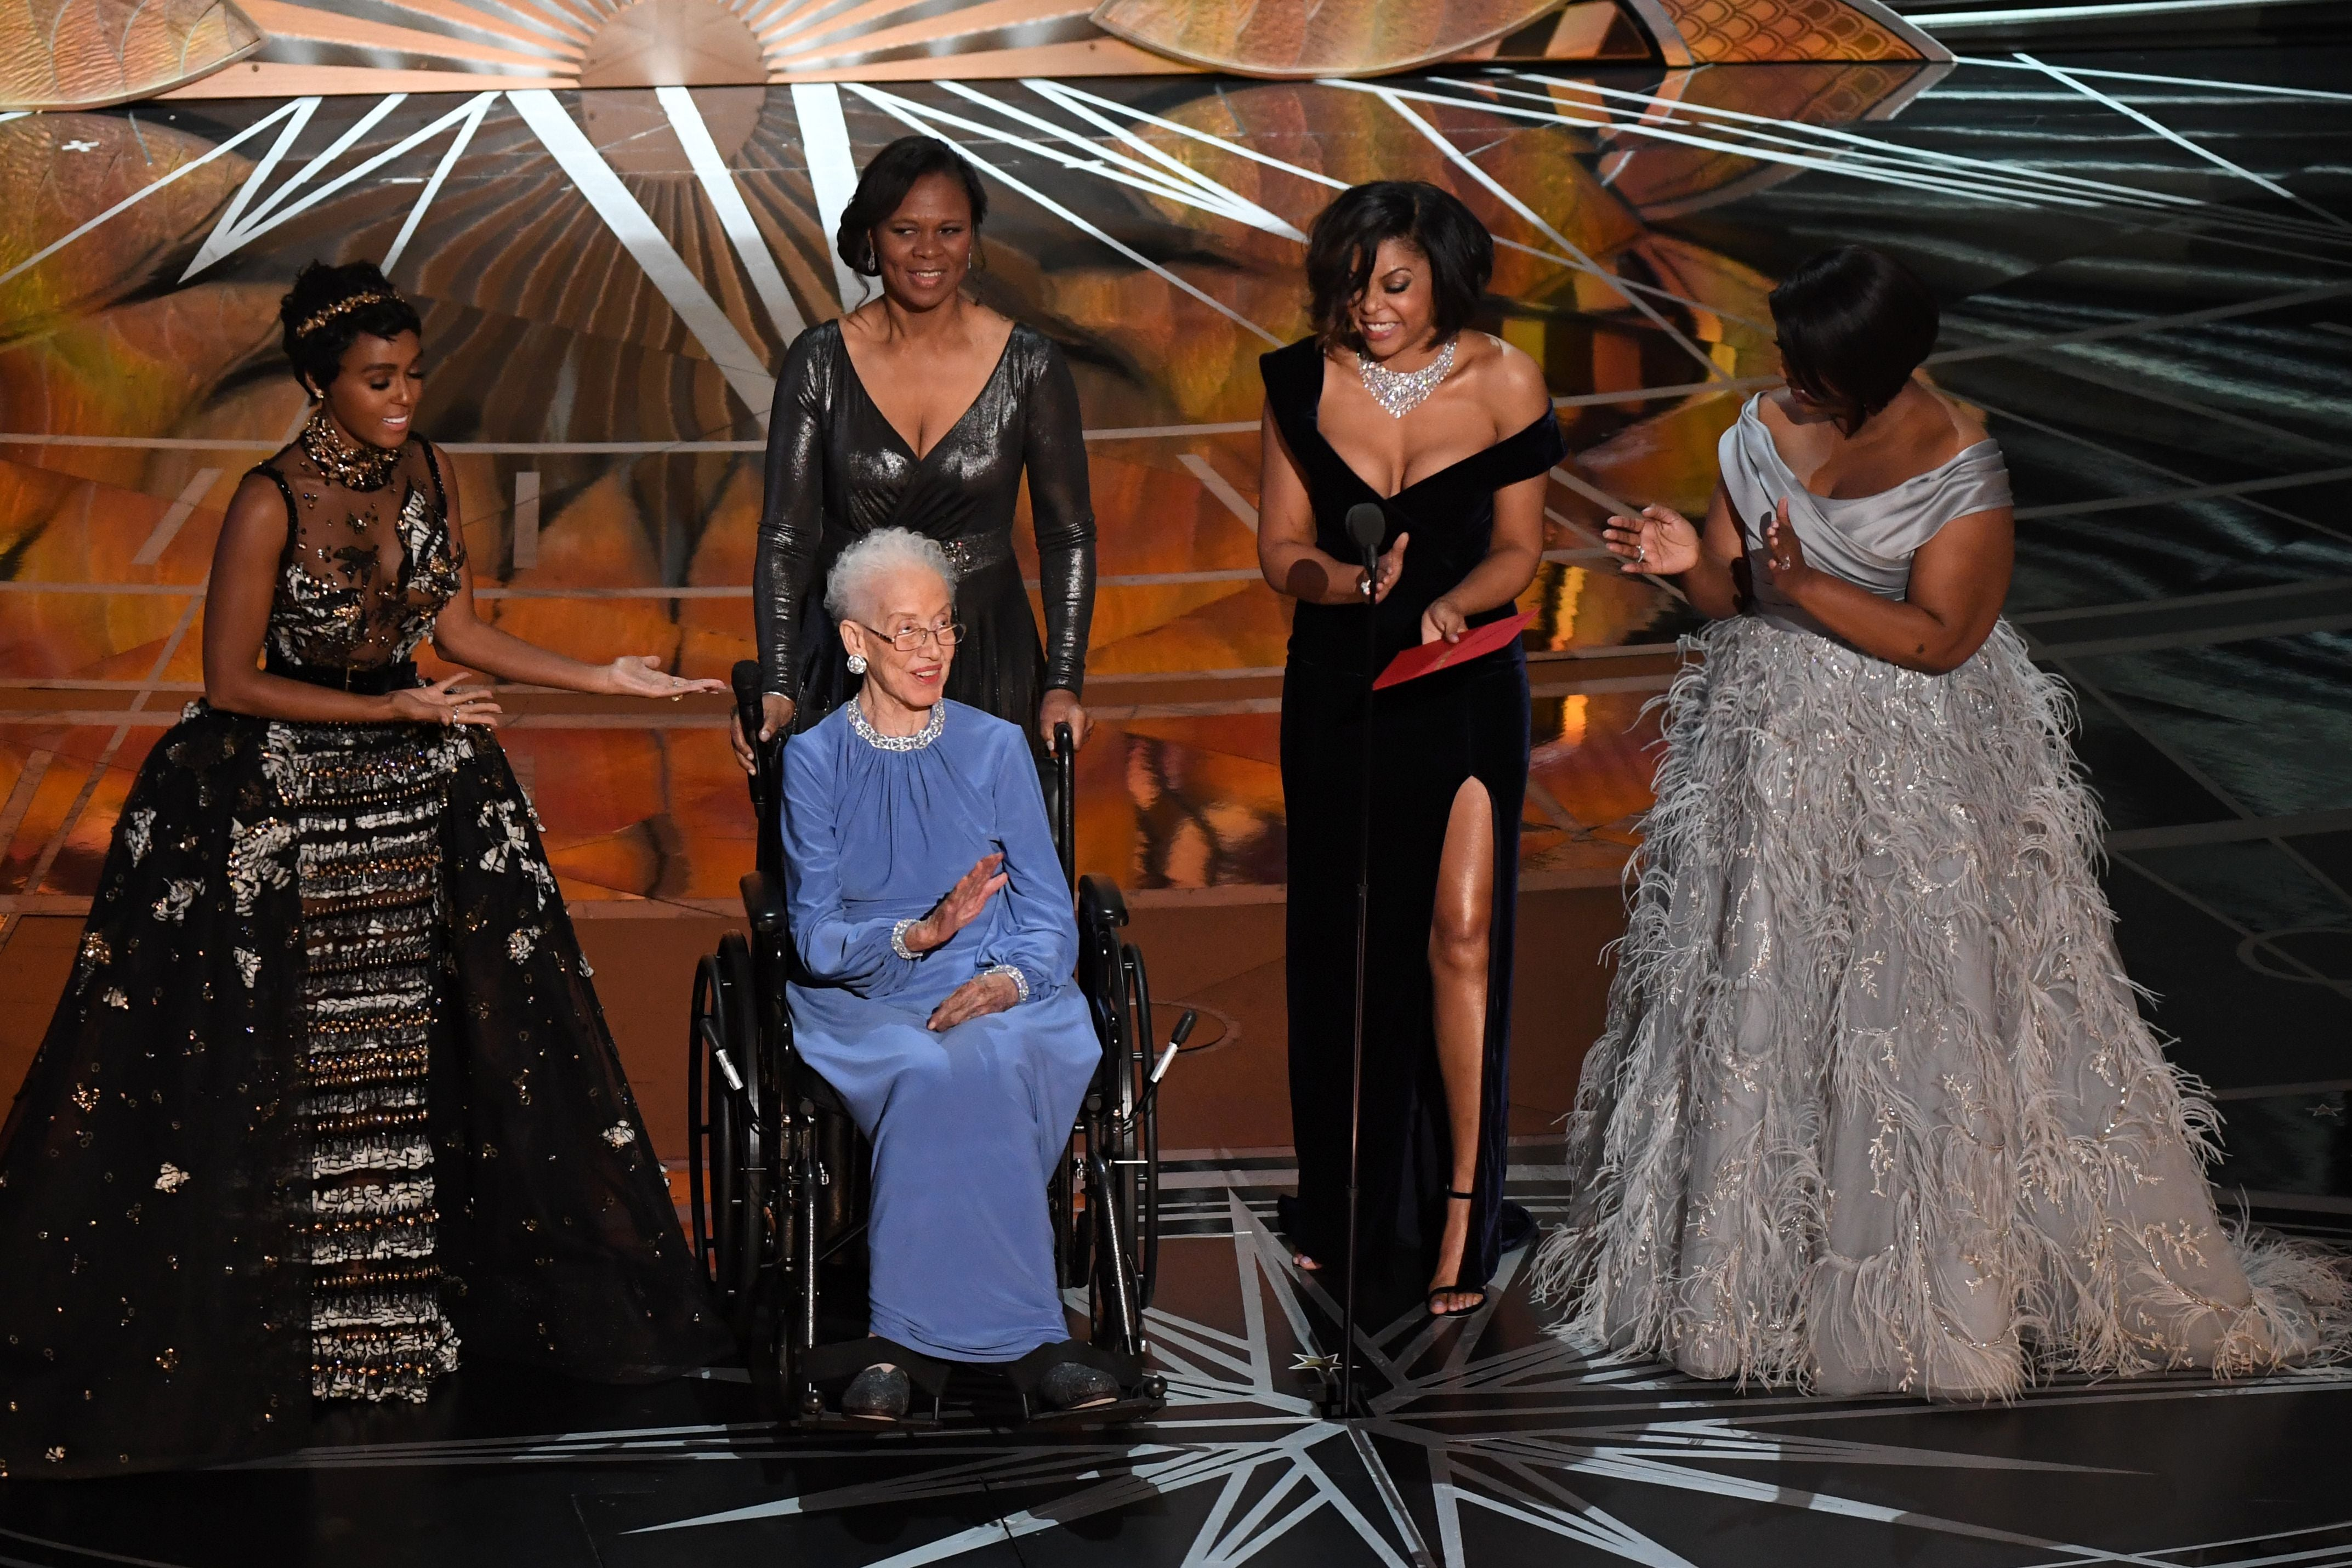 The Real Katherine Johnson Joined The Cast Of 'Hidden Figures' For A Poignant Moment At The Oscars